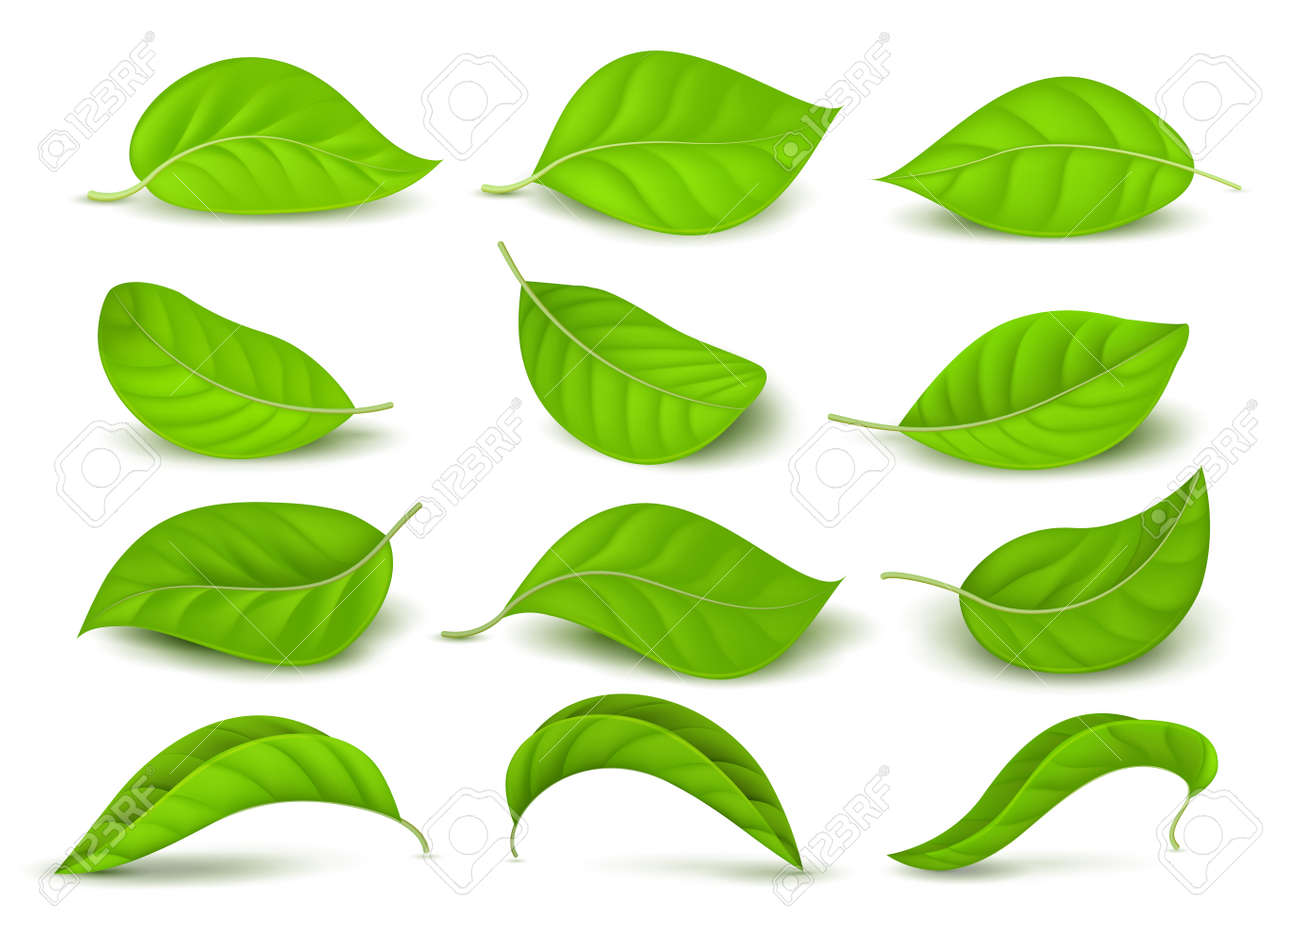 Realistic green tea leaves with water drops isolated on white vector set. Green tea leaf, natural freshness illustration - 166831246